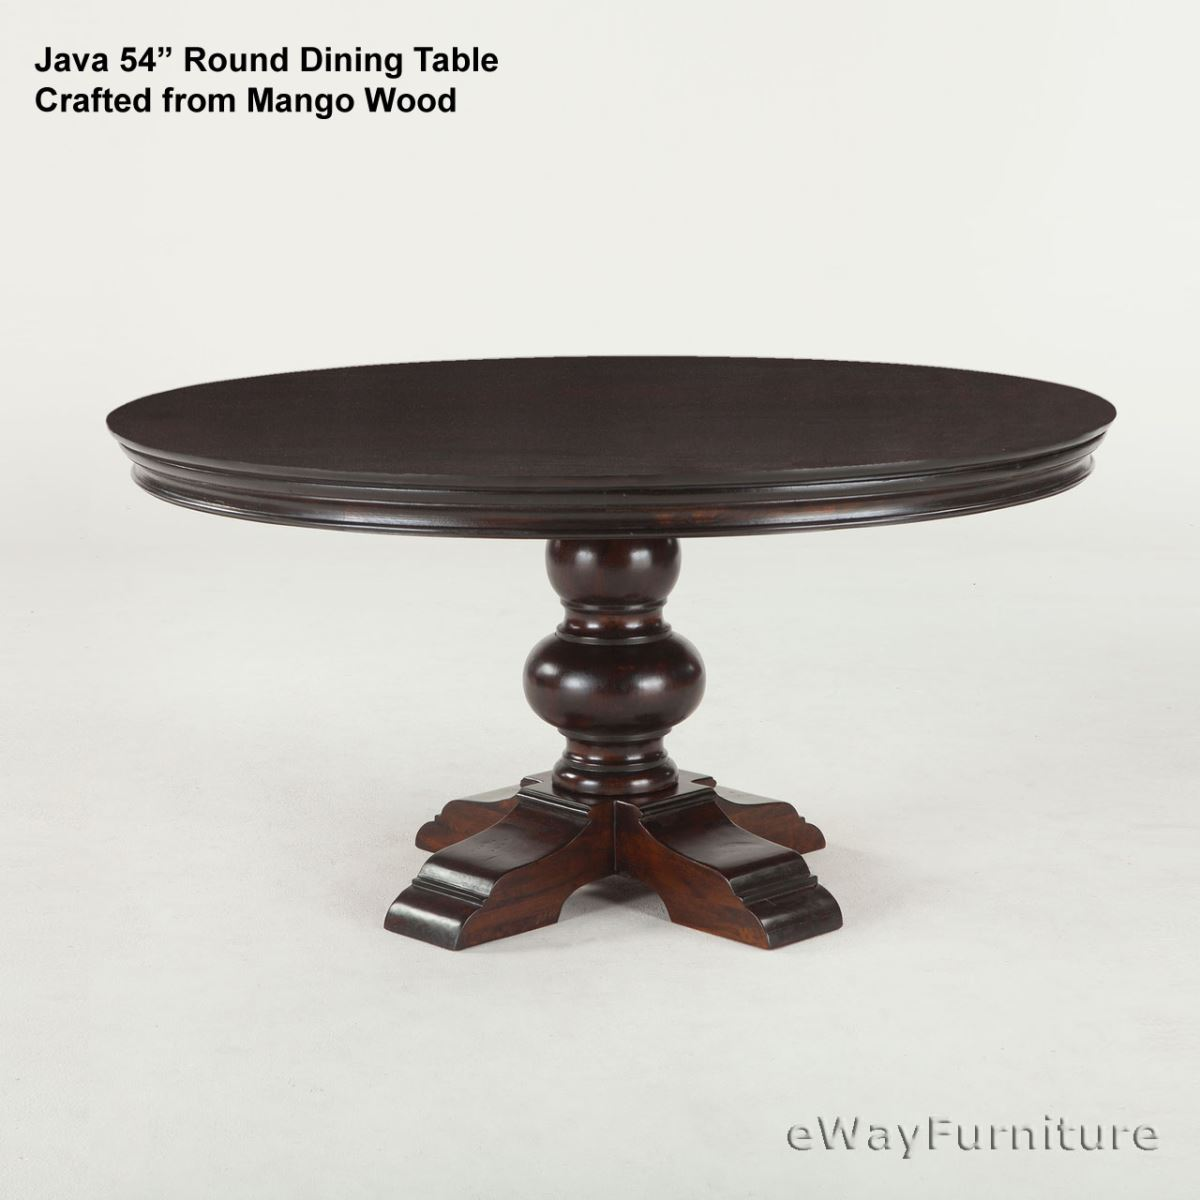 java round dining table 54 inch. Black Bedroom Furniture Sets. Home Design Ideas